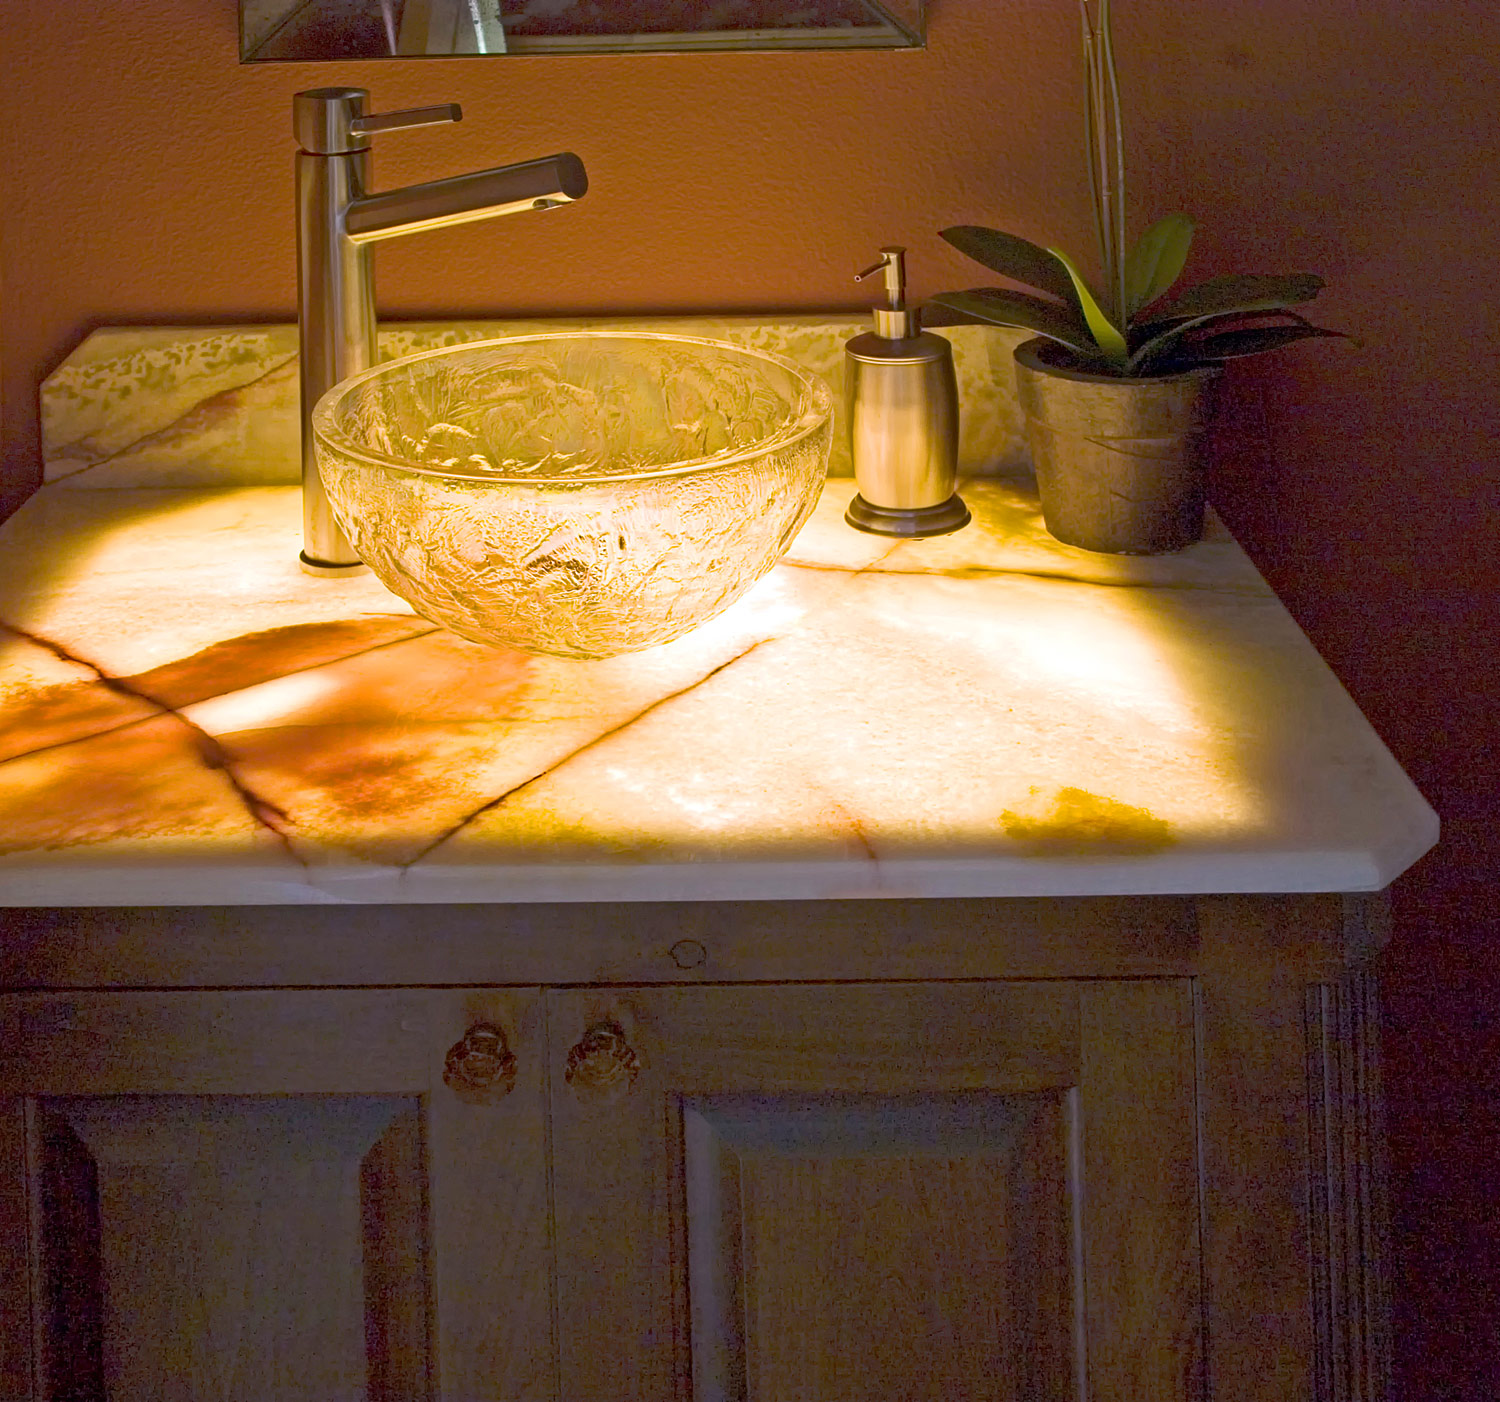 Luxury White Onyx Bathroom Vanity Top